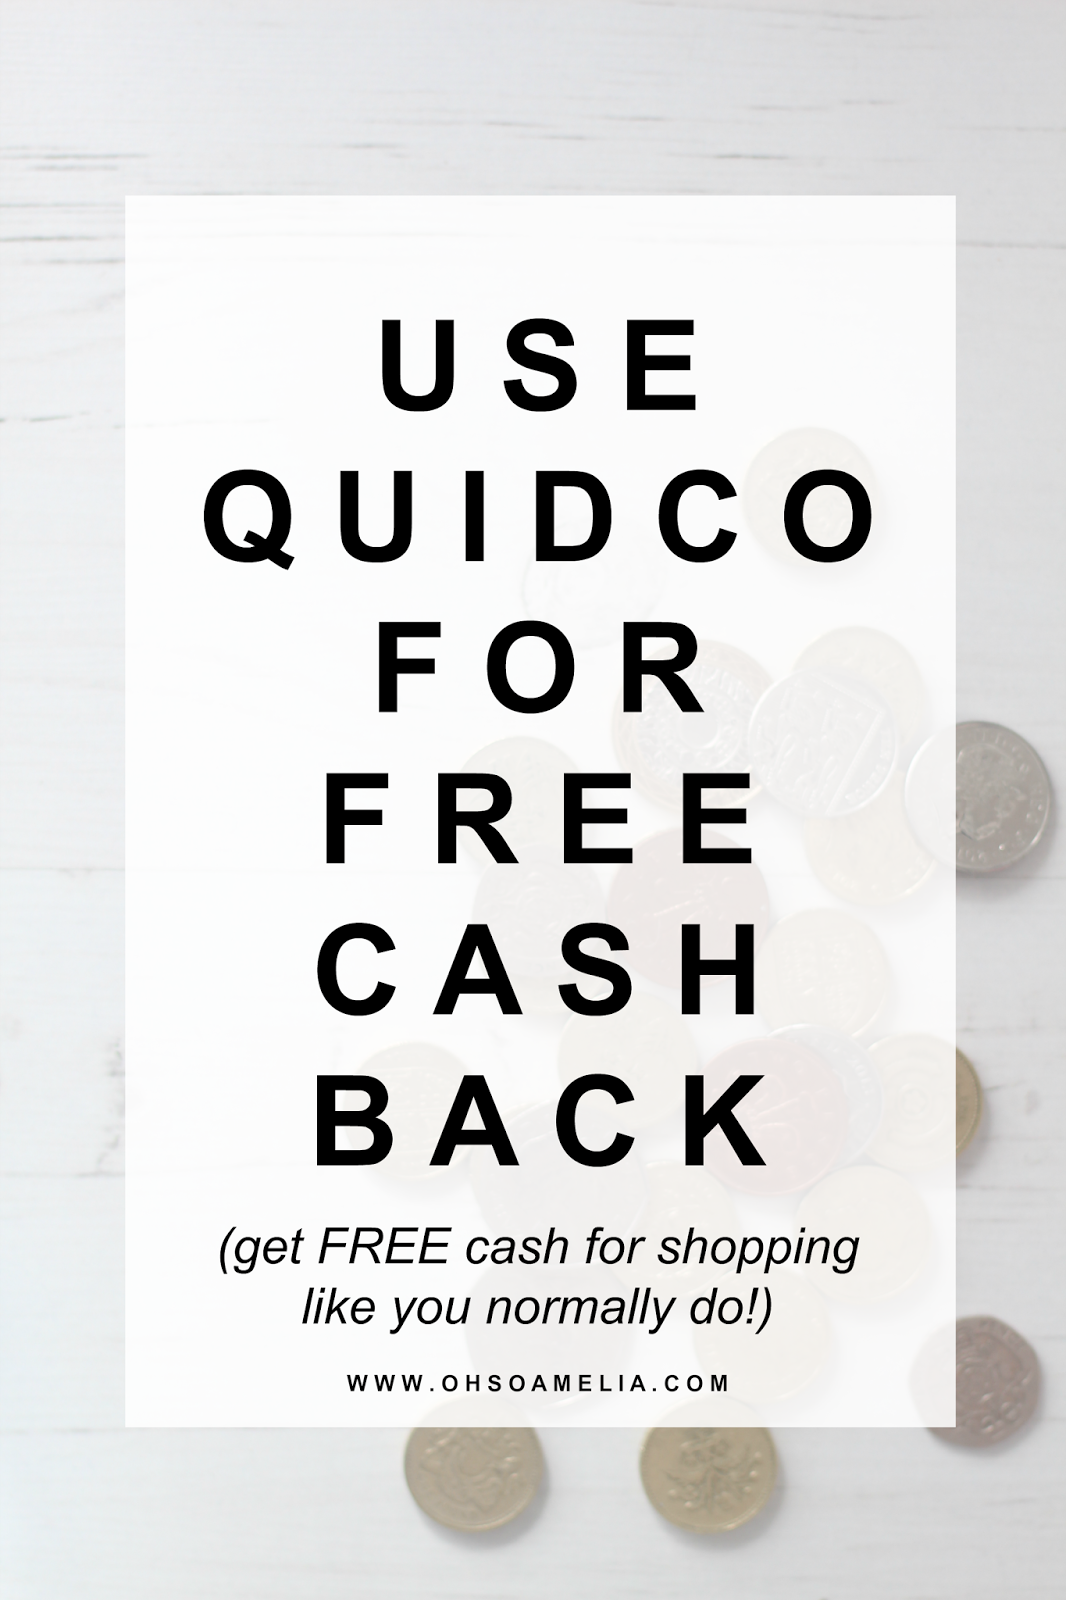 Use Quidco For Free Cash Back & Get £45 FREE!